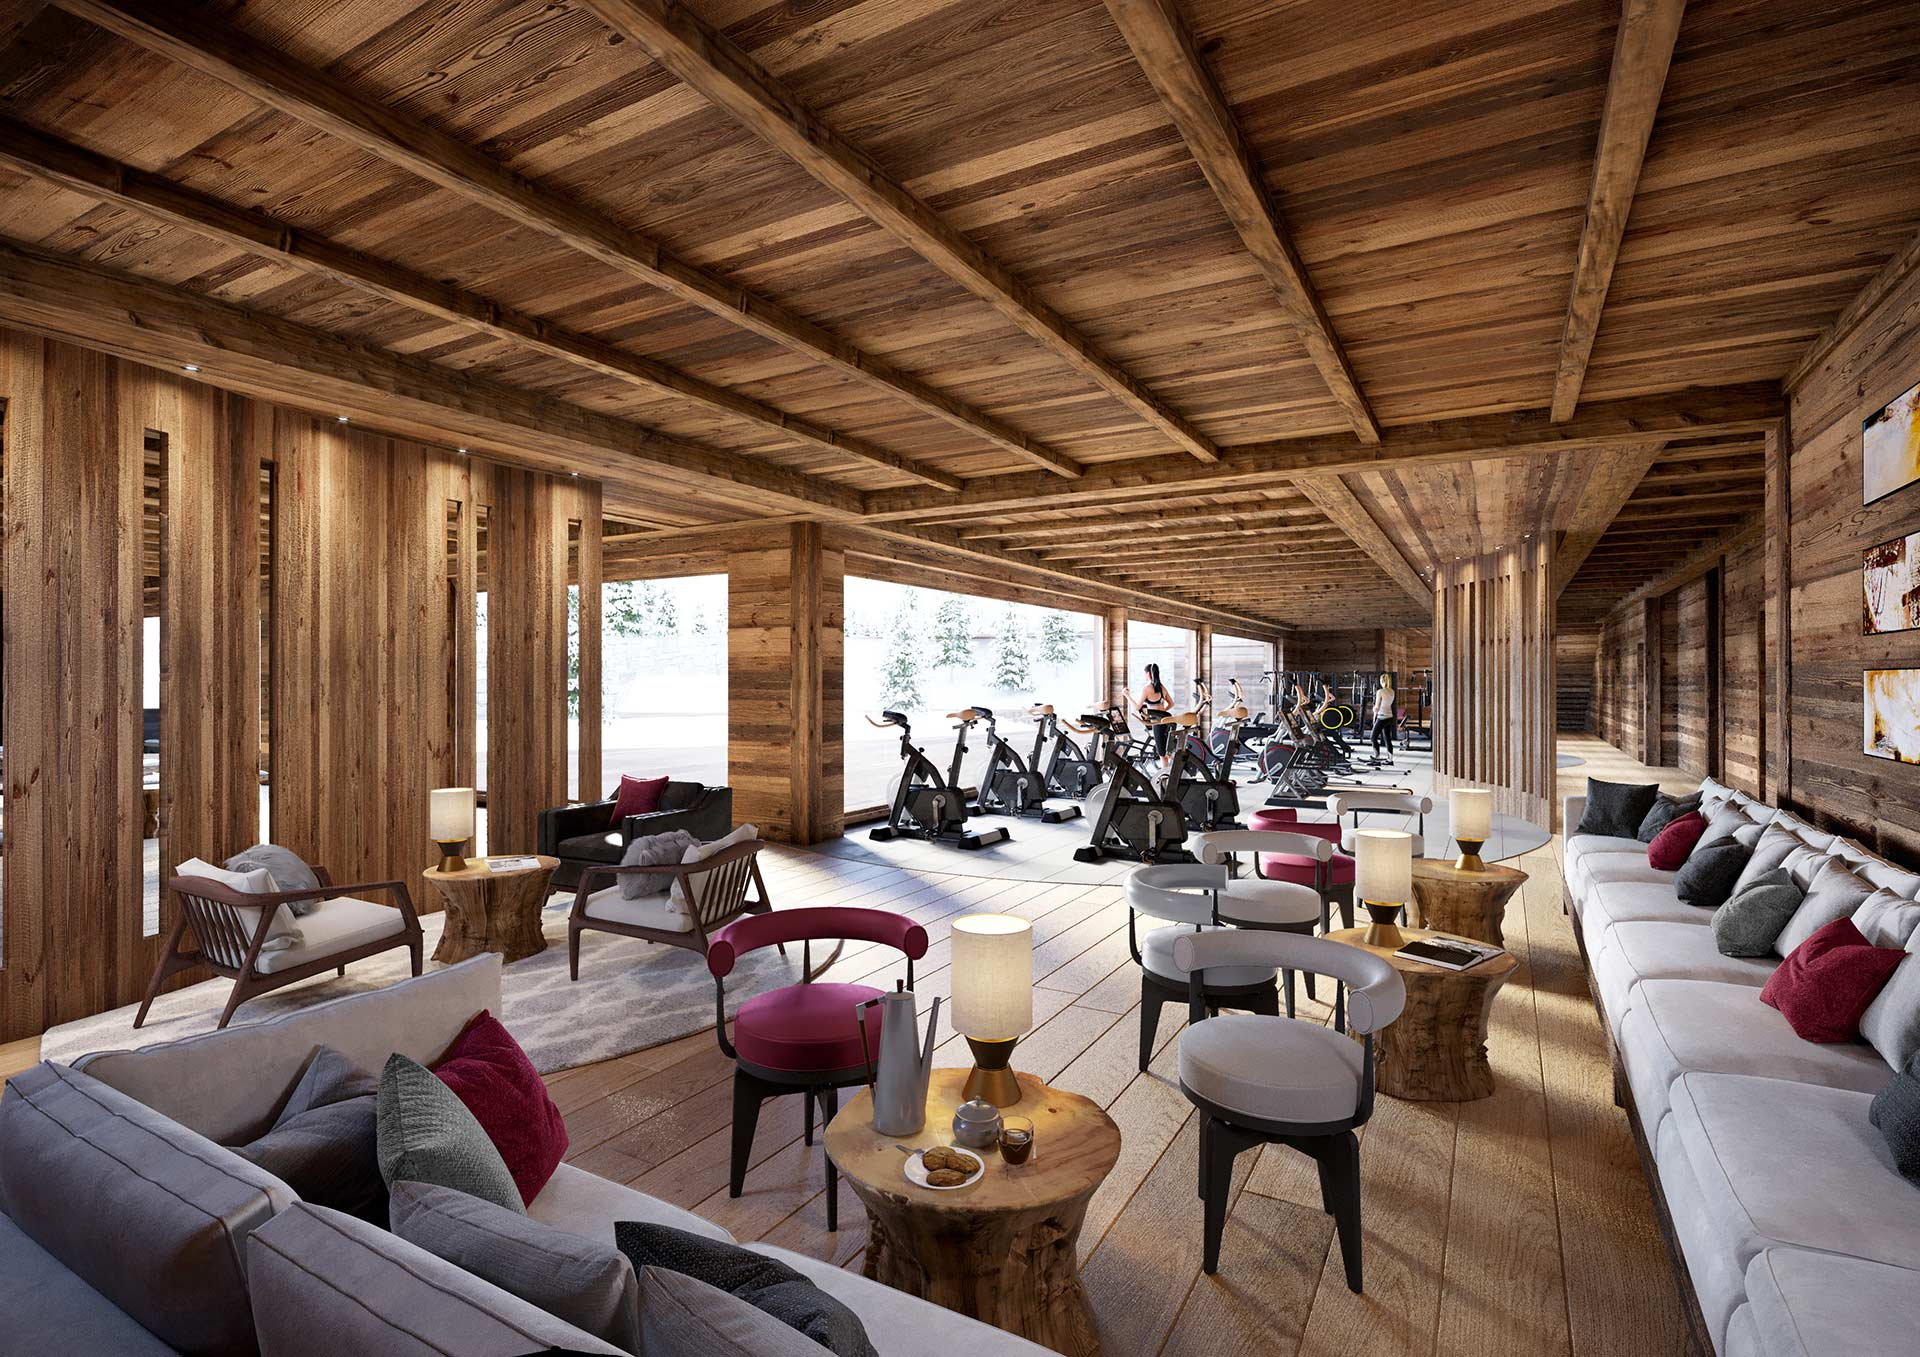 3D Fitness room render in a mountain hotel